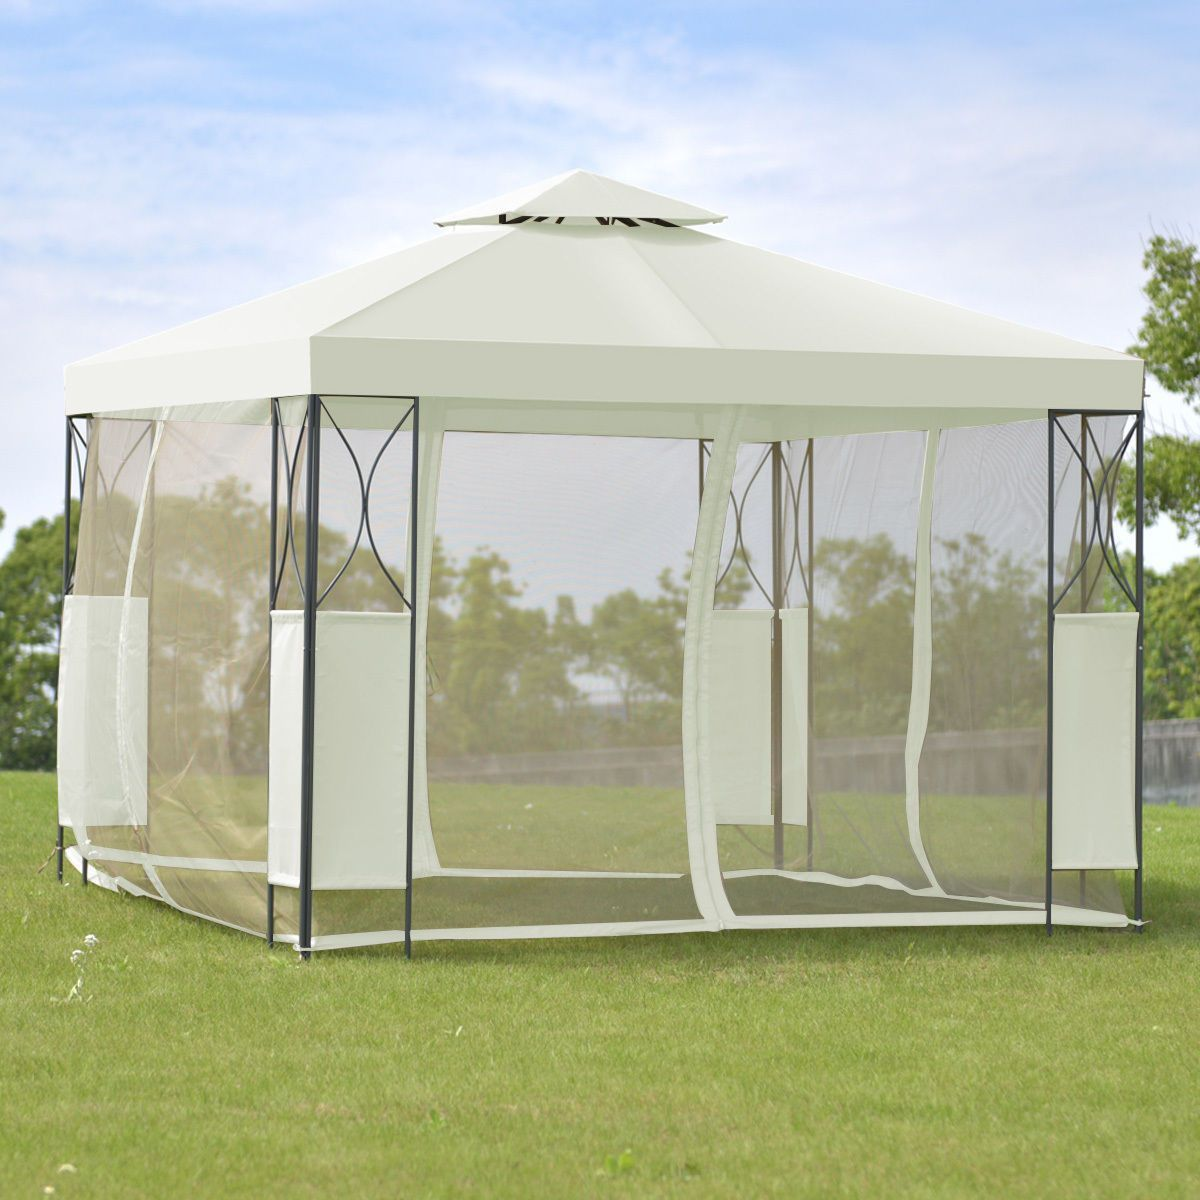 Pin by Melissa Yarbrough on Canopy tent Gazebo canopy